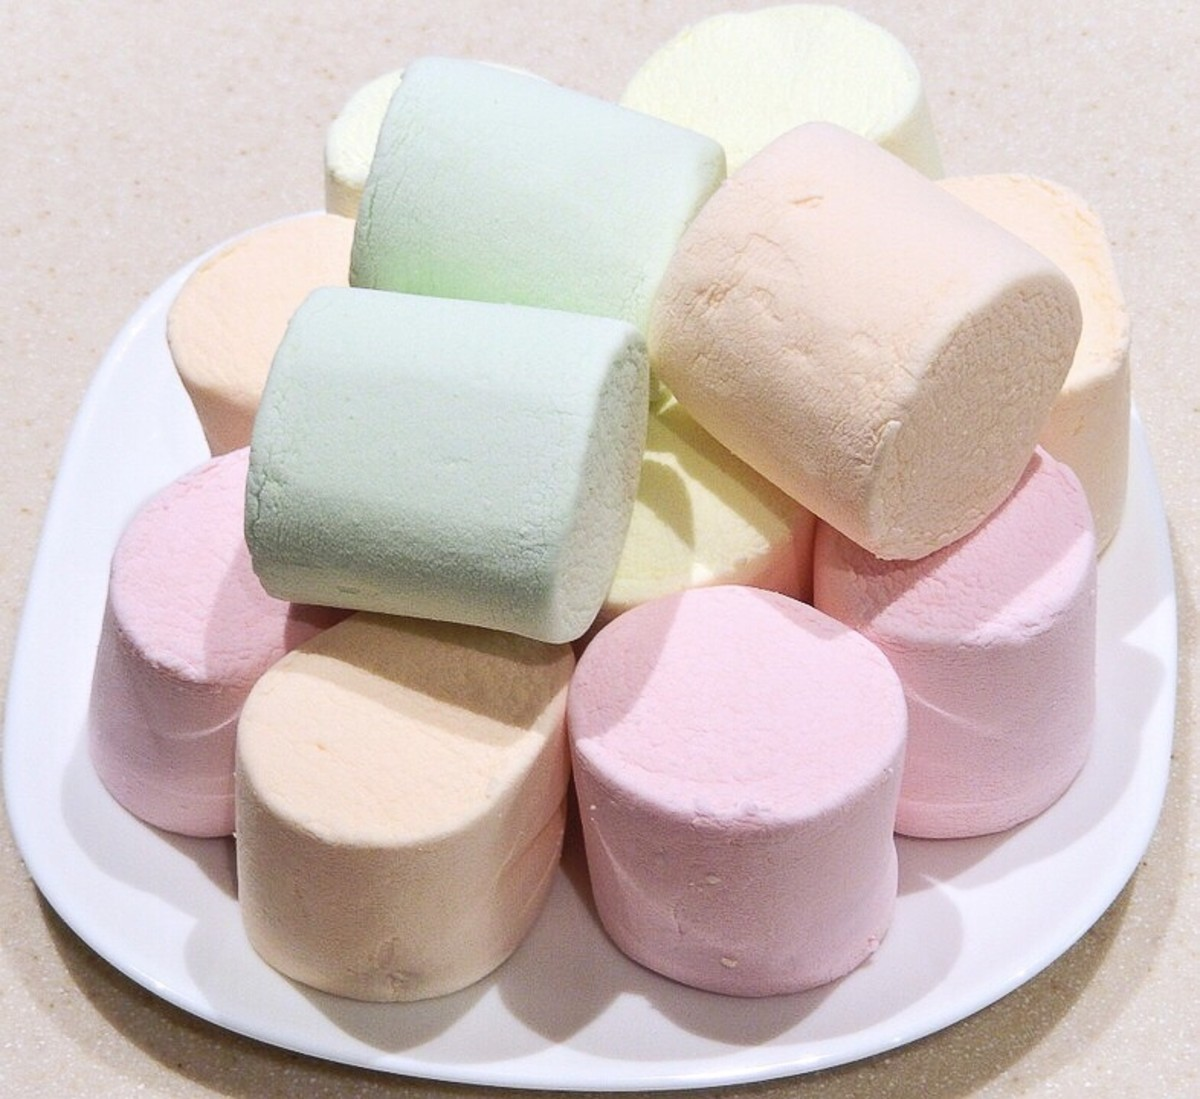 Marshmallows of different colors and flavors